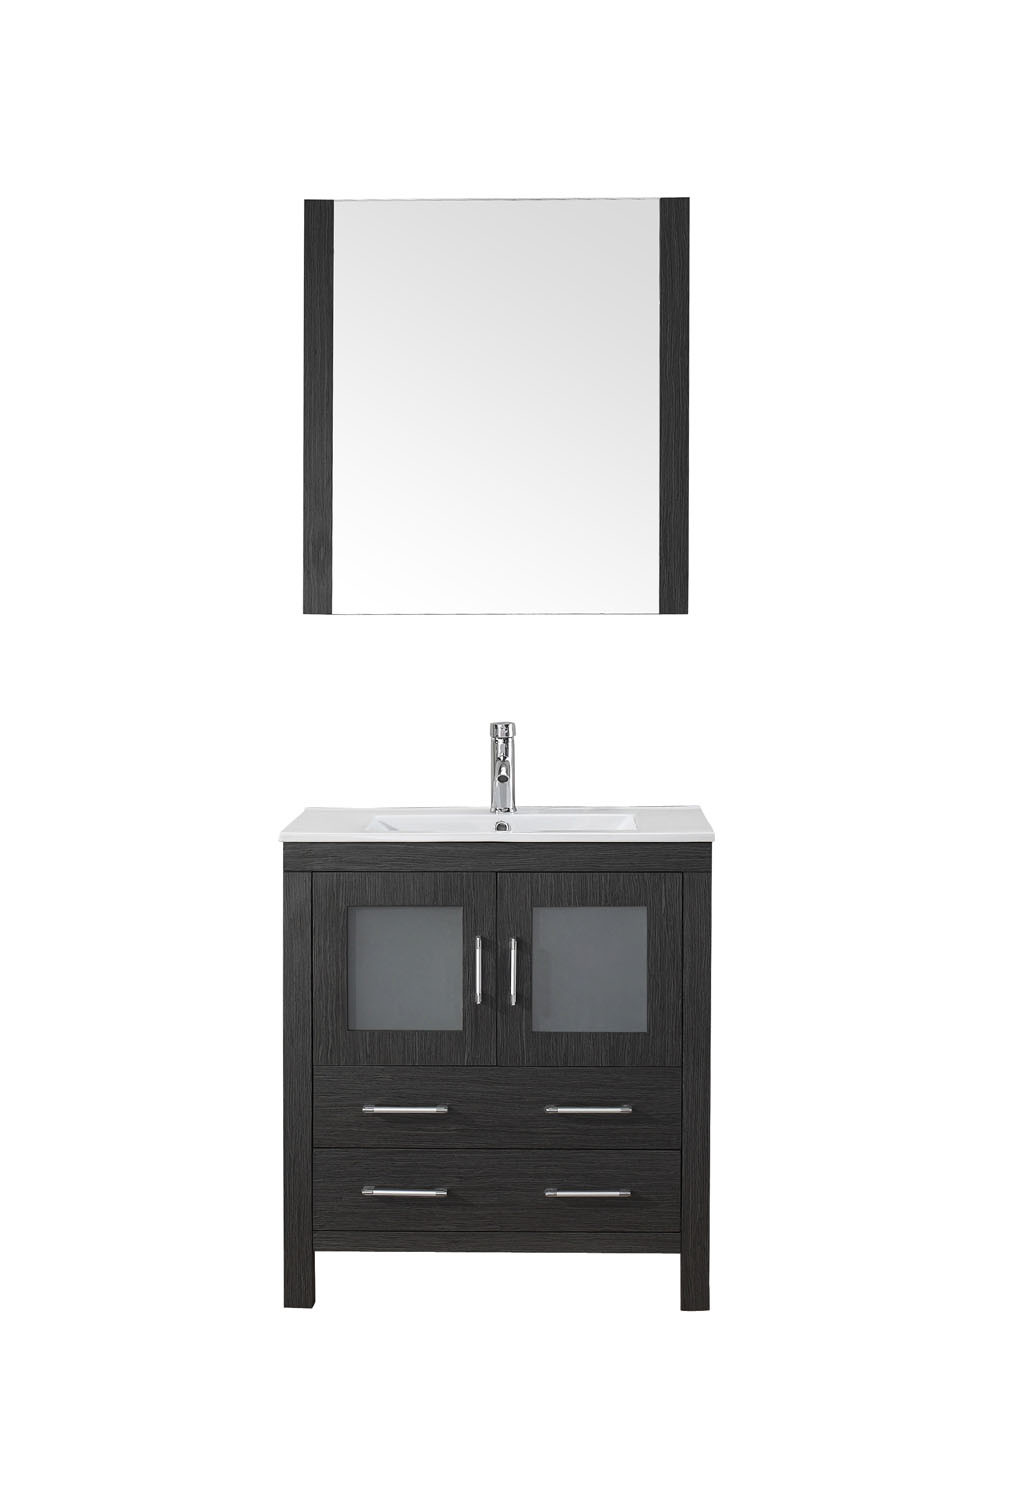 Virtu KS-70030-C-ZG-001 Dior 30 Inch Single Bathroom Vanity Set In Zebra Grey